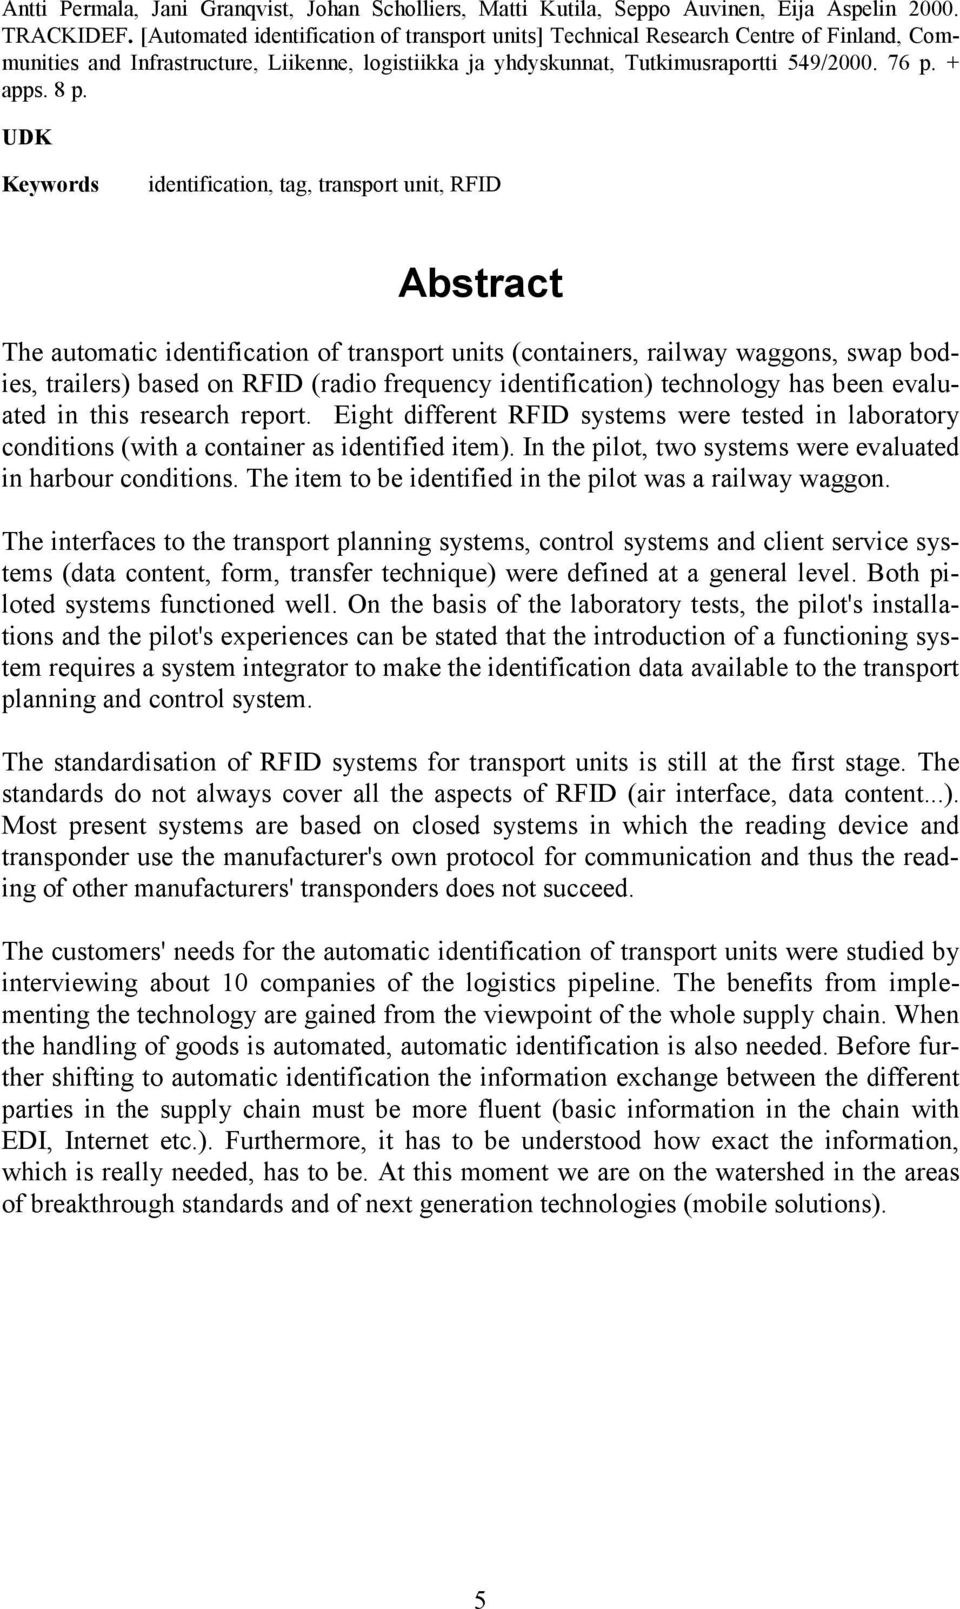 UDK Keywords identification, tag, transport unit, RFID Abstract The automatic identification of transport units (containers, railway waggons, swap bodies, trailers) based on RFID (radio frequency